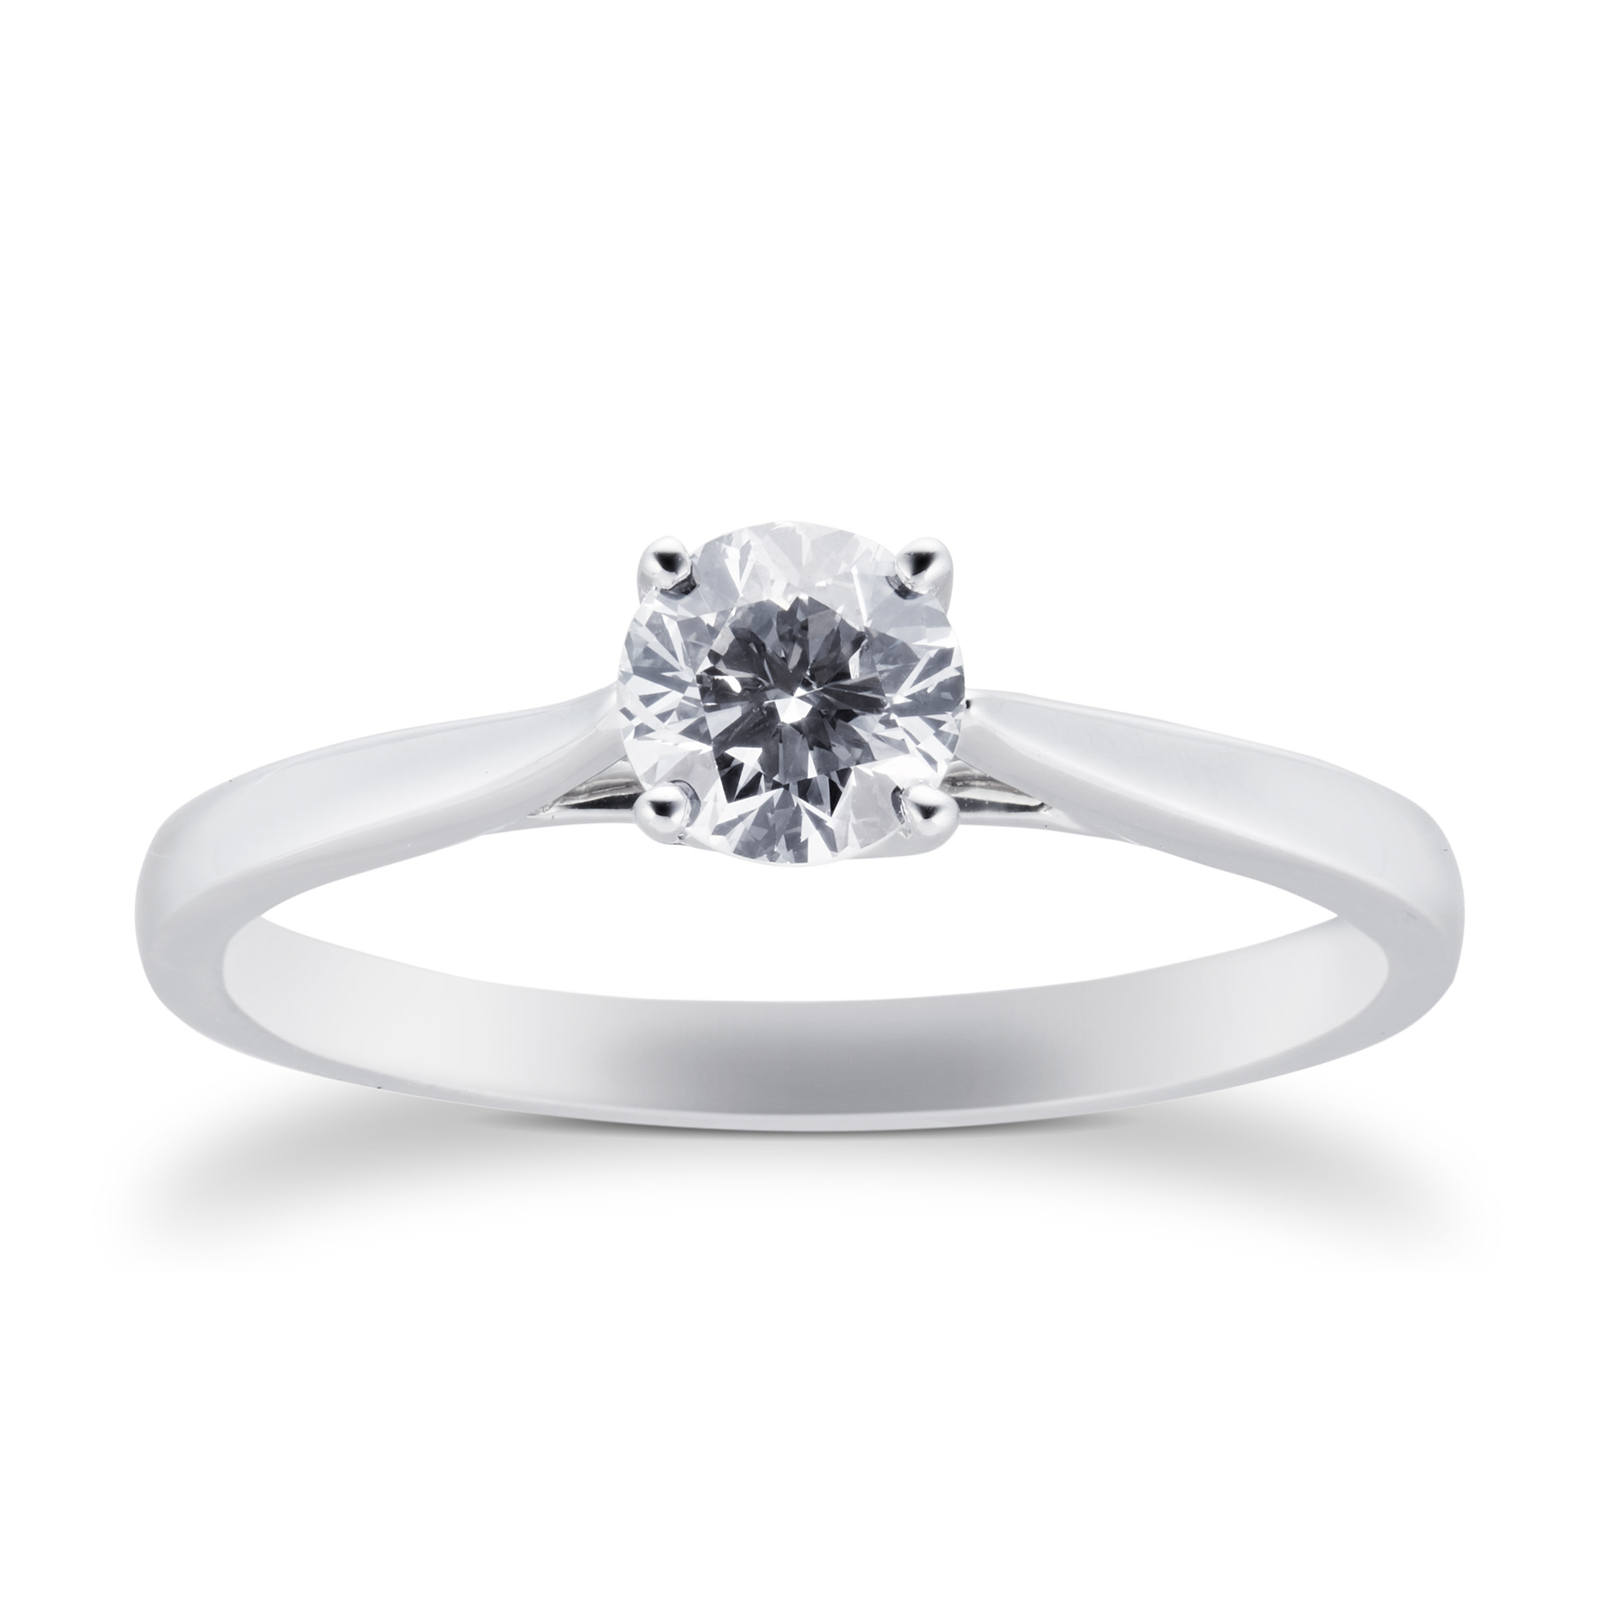 18ct White Gold Brilliant Cut 0.40 Carat 88 Facet Diamond Ring